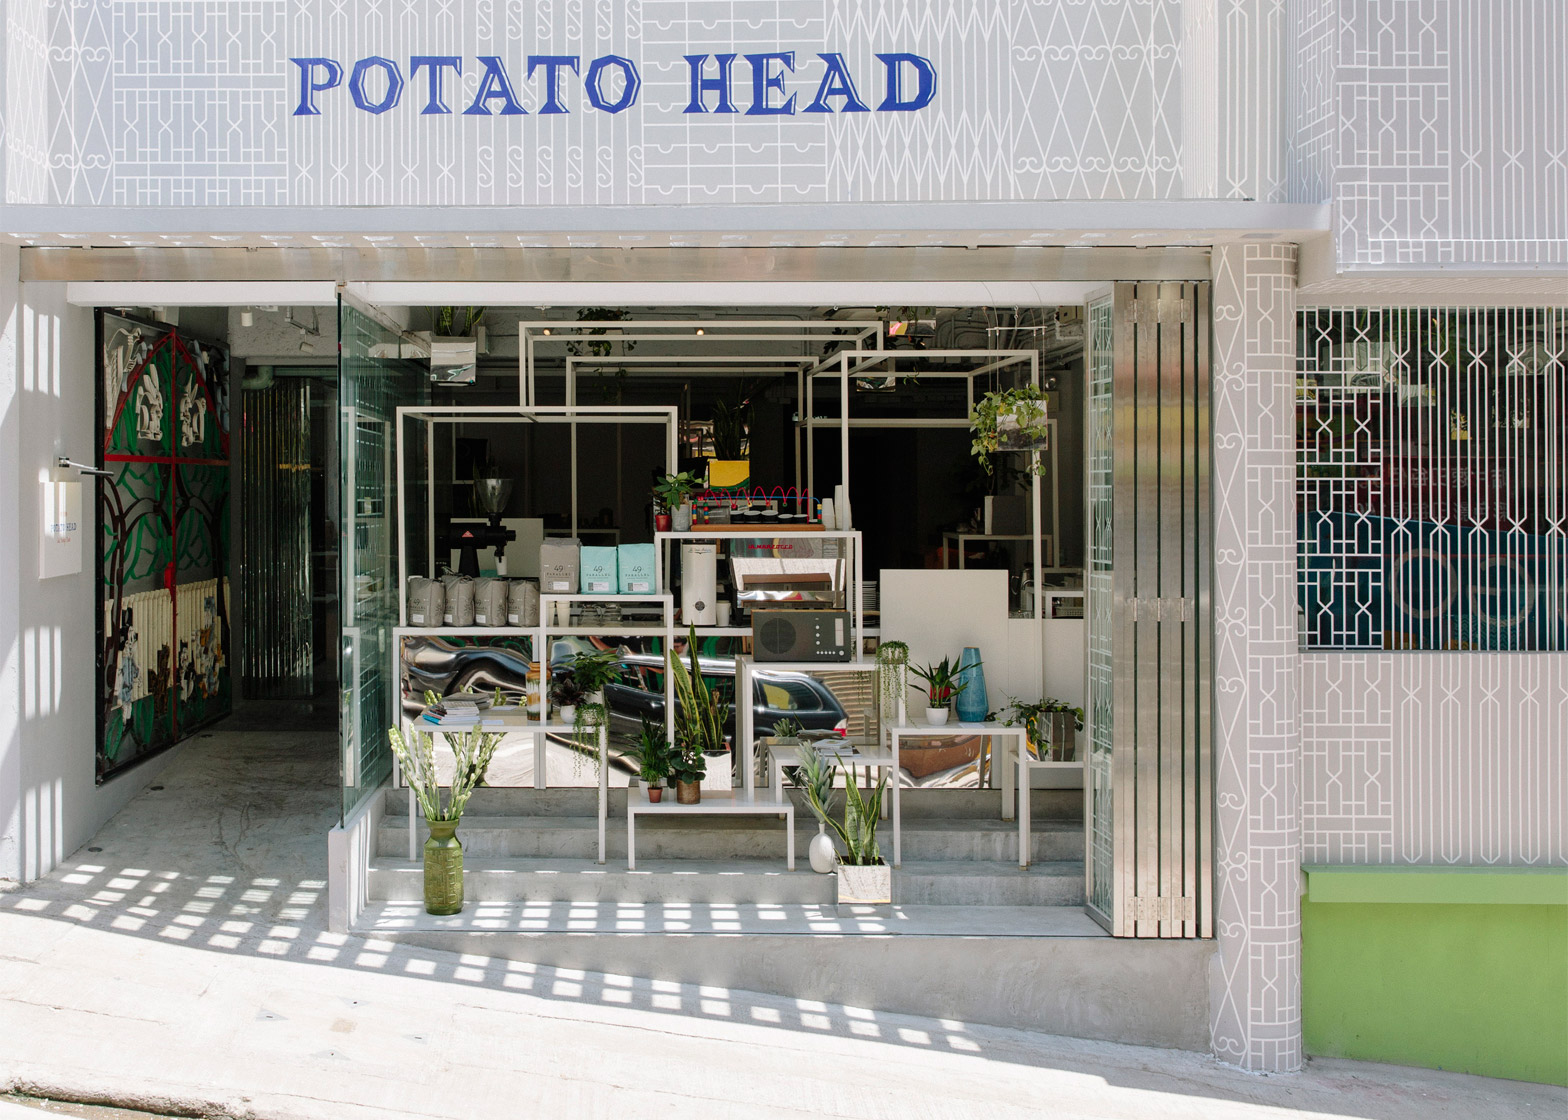 Potato Head Hong Kong interior by Sou Fujimoto for PTT Family